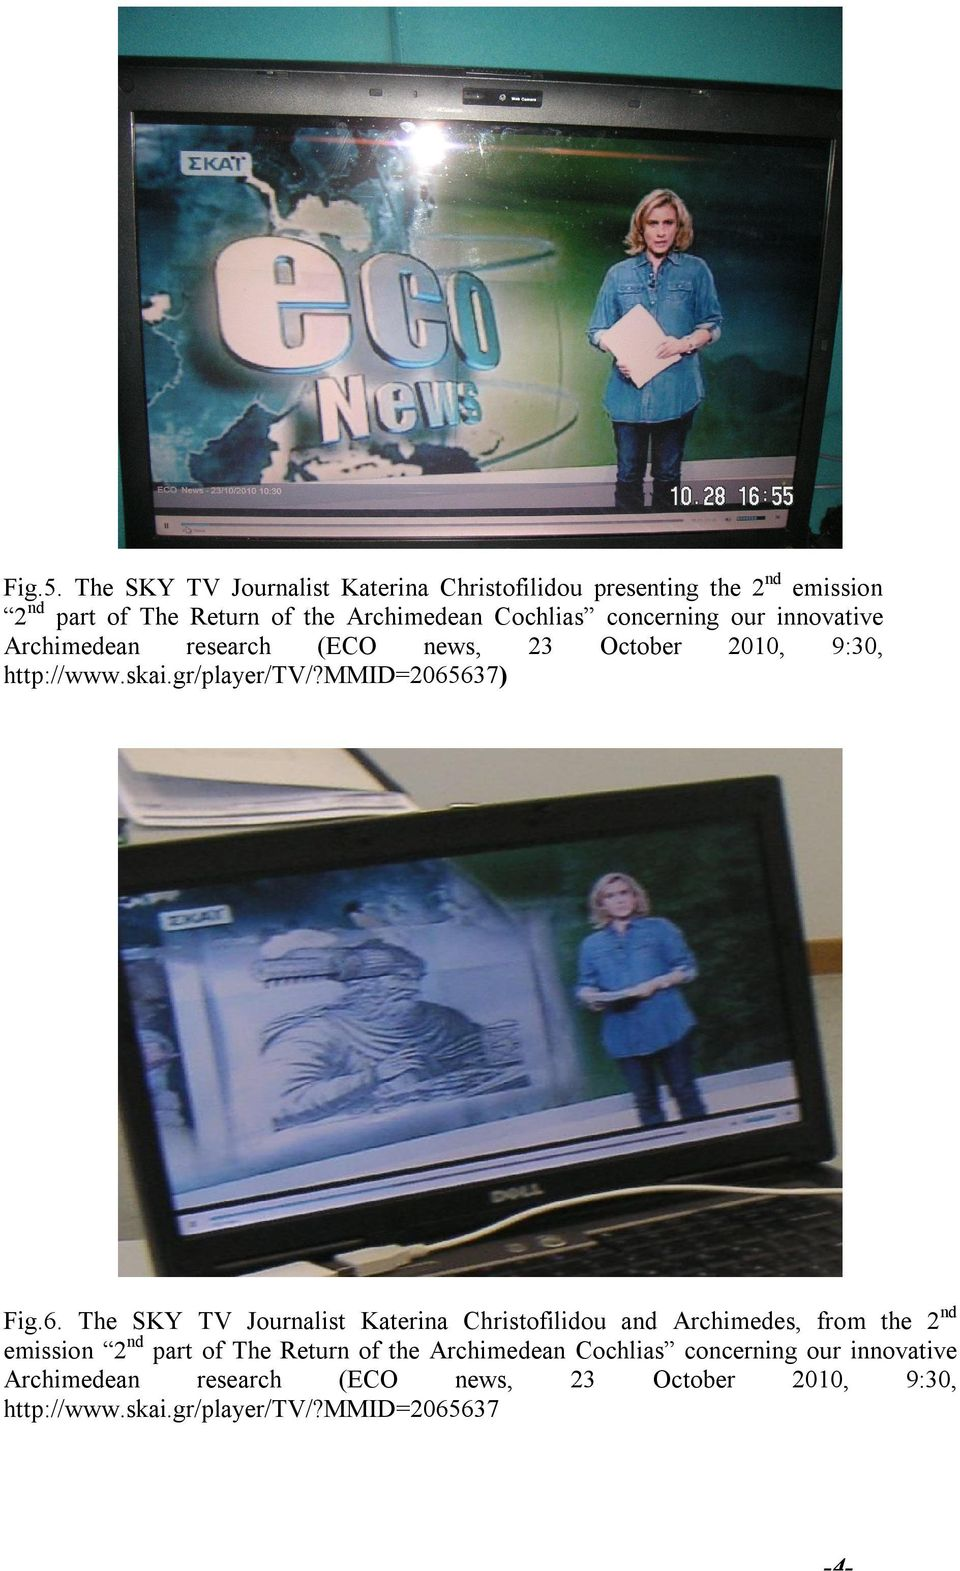 concerning our innovative Archimedean research (ECO news, 23 October 2010, 9:30, http://www.skai.gr/player/tv/?mmid=2065